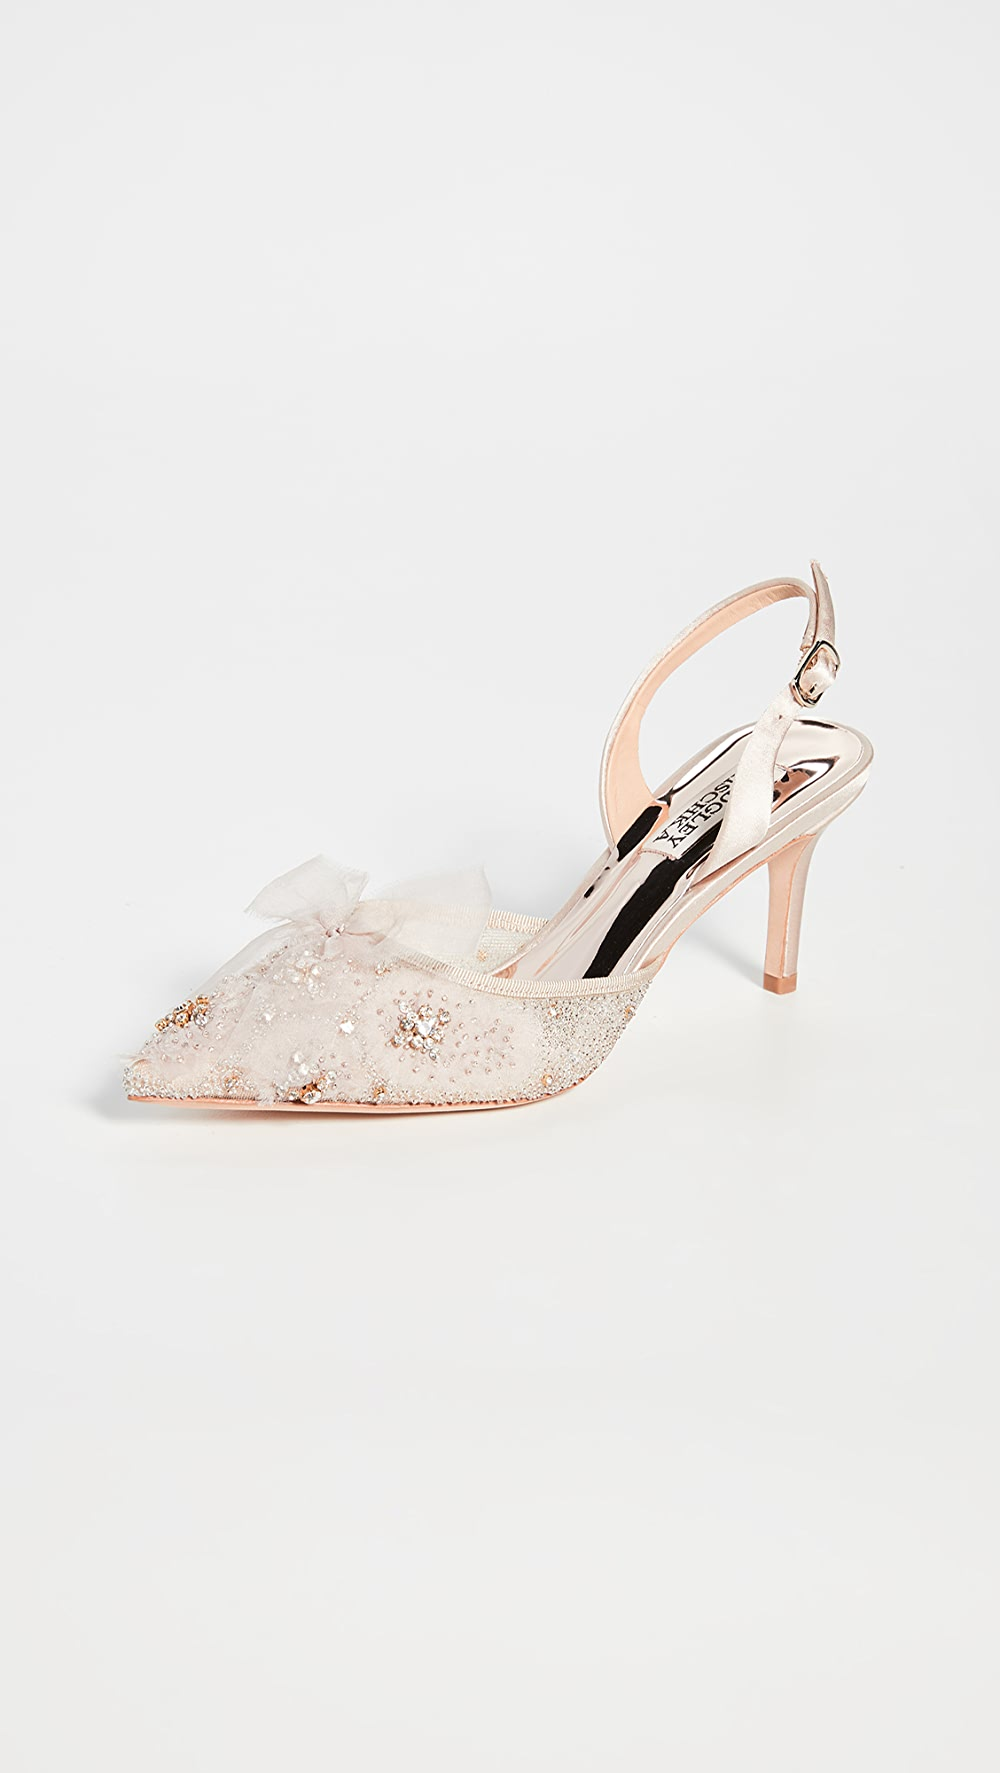 Enthusiastic Badgley Mischka - Angeline Slingback Pumps Promoting Health And Curing Diseases